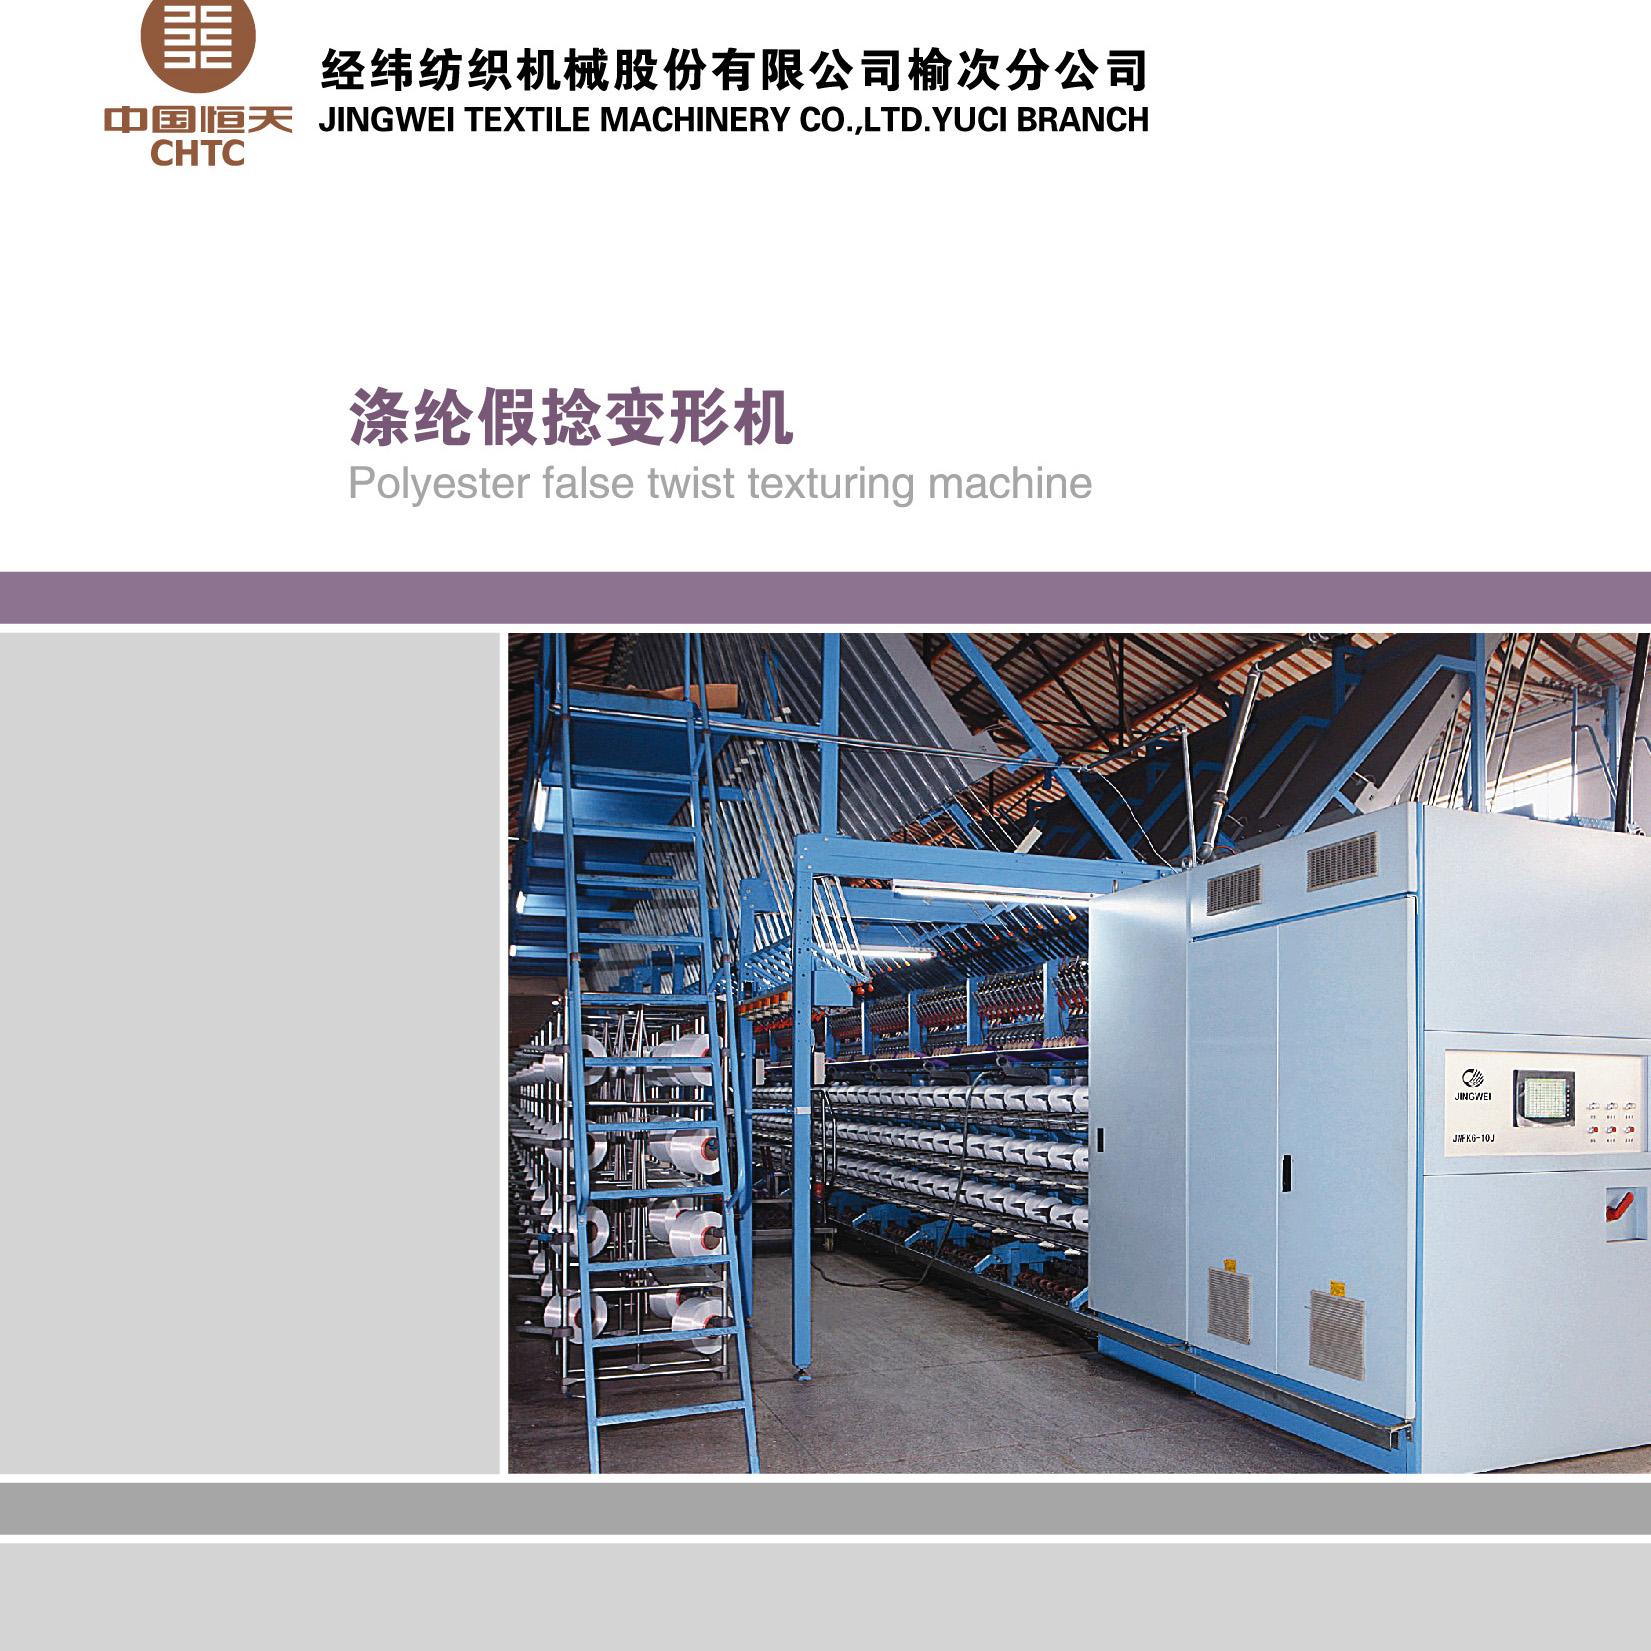 Polyester false twist texturing machine